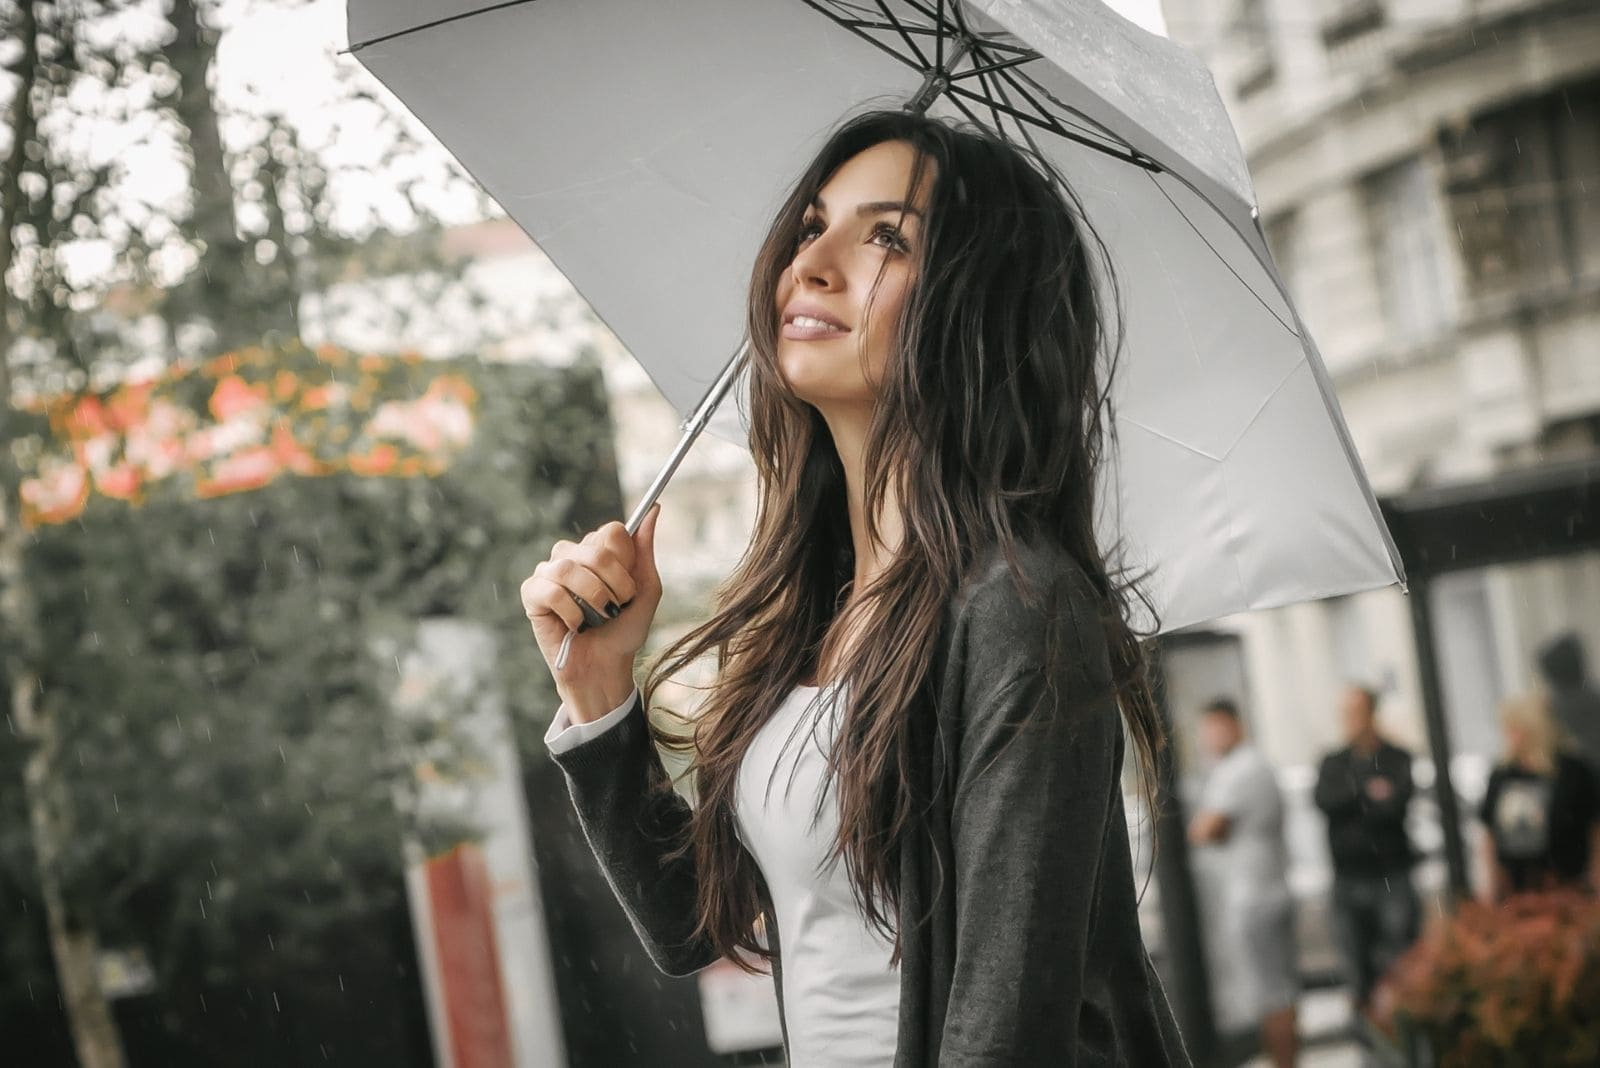 young woman smiling even its raining and bringing an umbrella outdoors